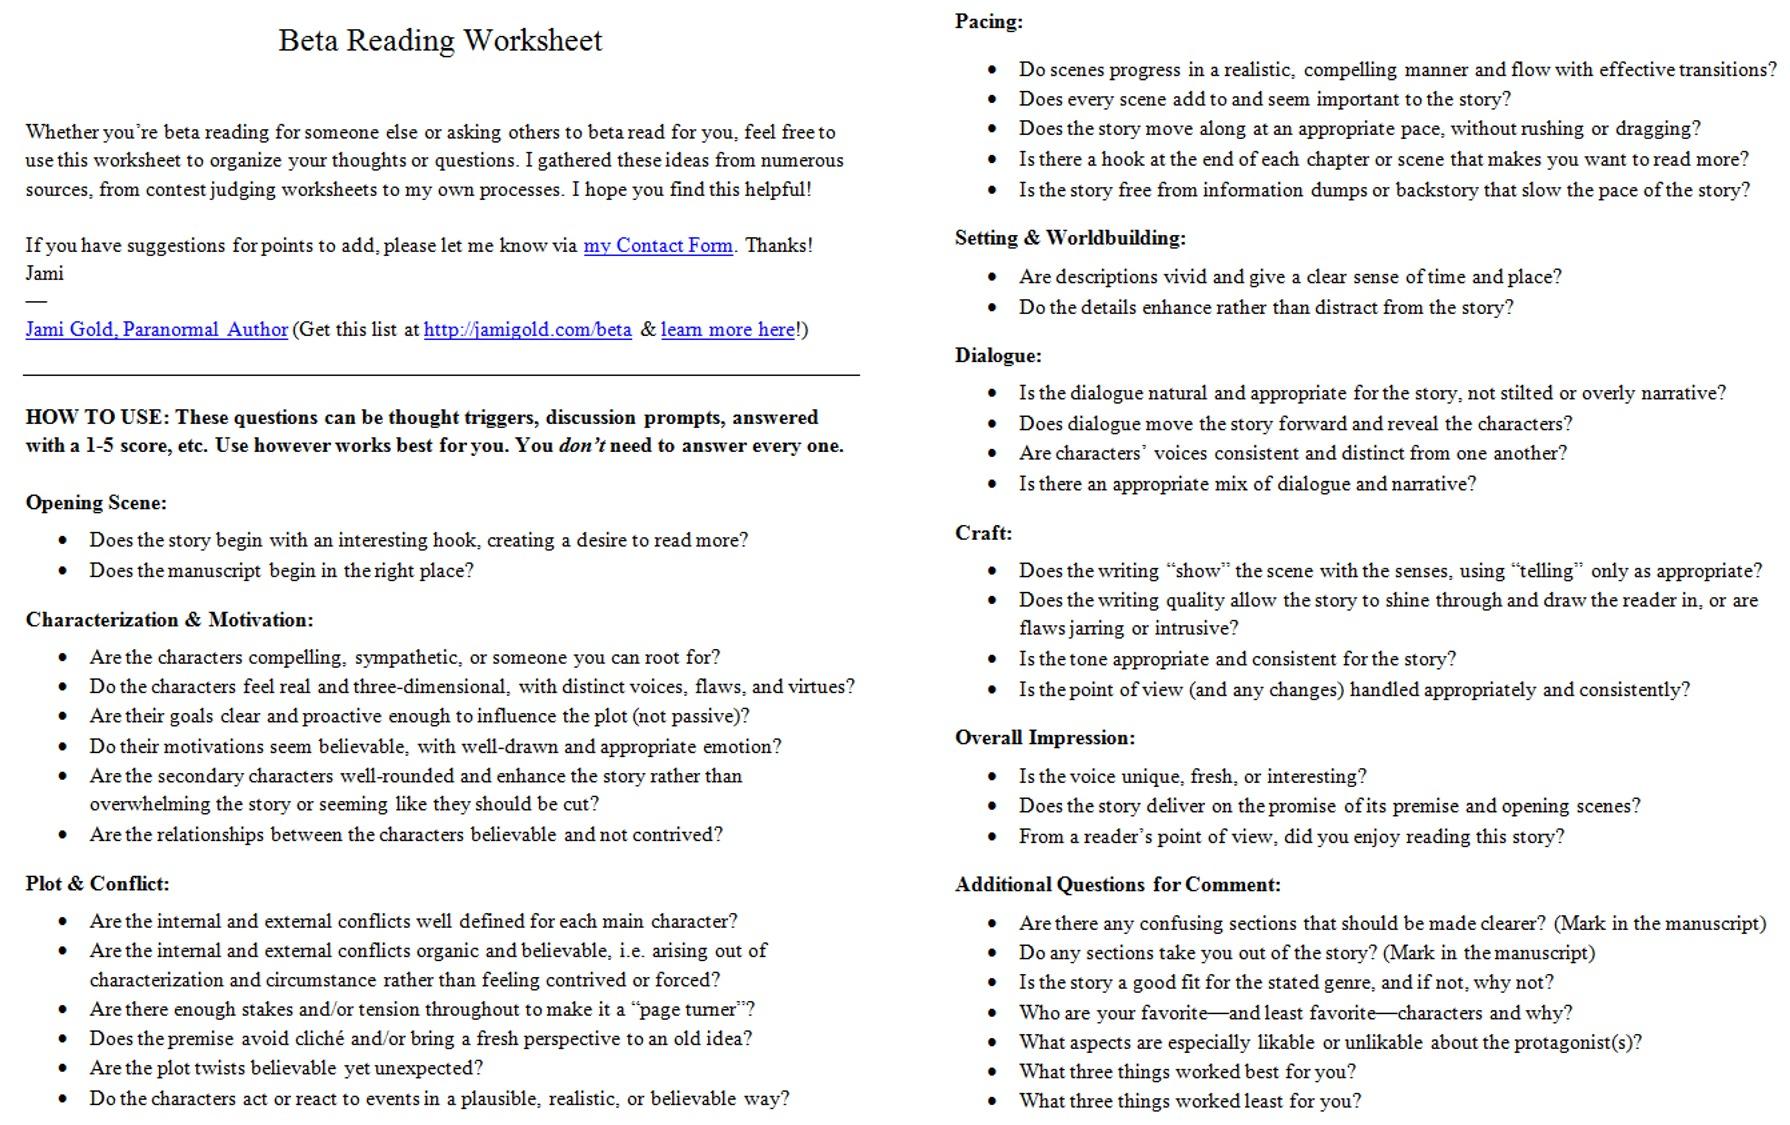 Aldiablosus  Personable Worksheets For Writers  Jami Gold Paranormal Author With Lovely Screen Shot Of The Twopage Beta Reading Worksheet With Appealing Sparklebox Worksheets Also Blank Sequencing Worksheets In Addition Worksheet Free Printable And Adverbial Phrase Worksheets As Well As Subtracting And Adding Decimals Worksheet Additionally Place Value Worksheets Using Base Ten Blocks From Jamigoldcom With Aldiablosus  Lovely Worksheets For Writers  Jami Gold Paranormal Author With Appealing Screen Shot Of The Twopage Beta Reading Worksheet And Personable Sparklebox Worksheets Also Blank Sequencing Worksheets In Addition Worksheet Free Printable From Jamigoldcom